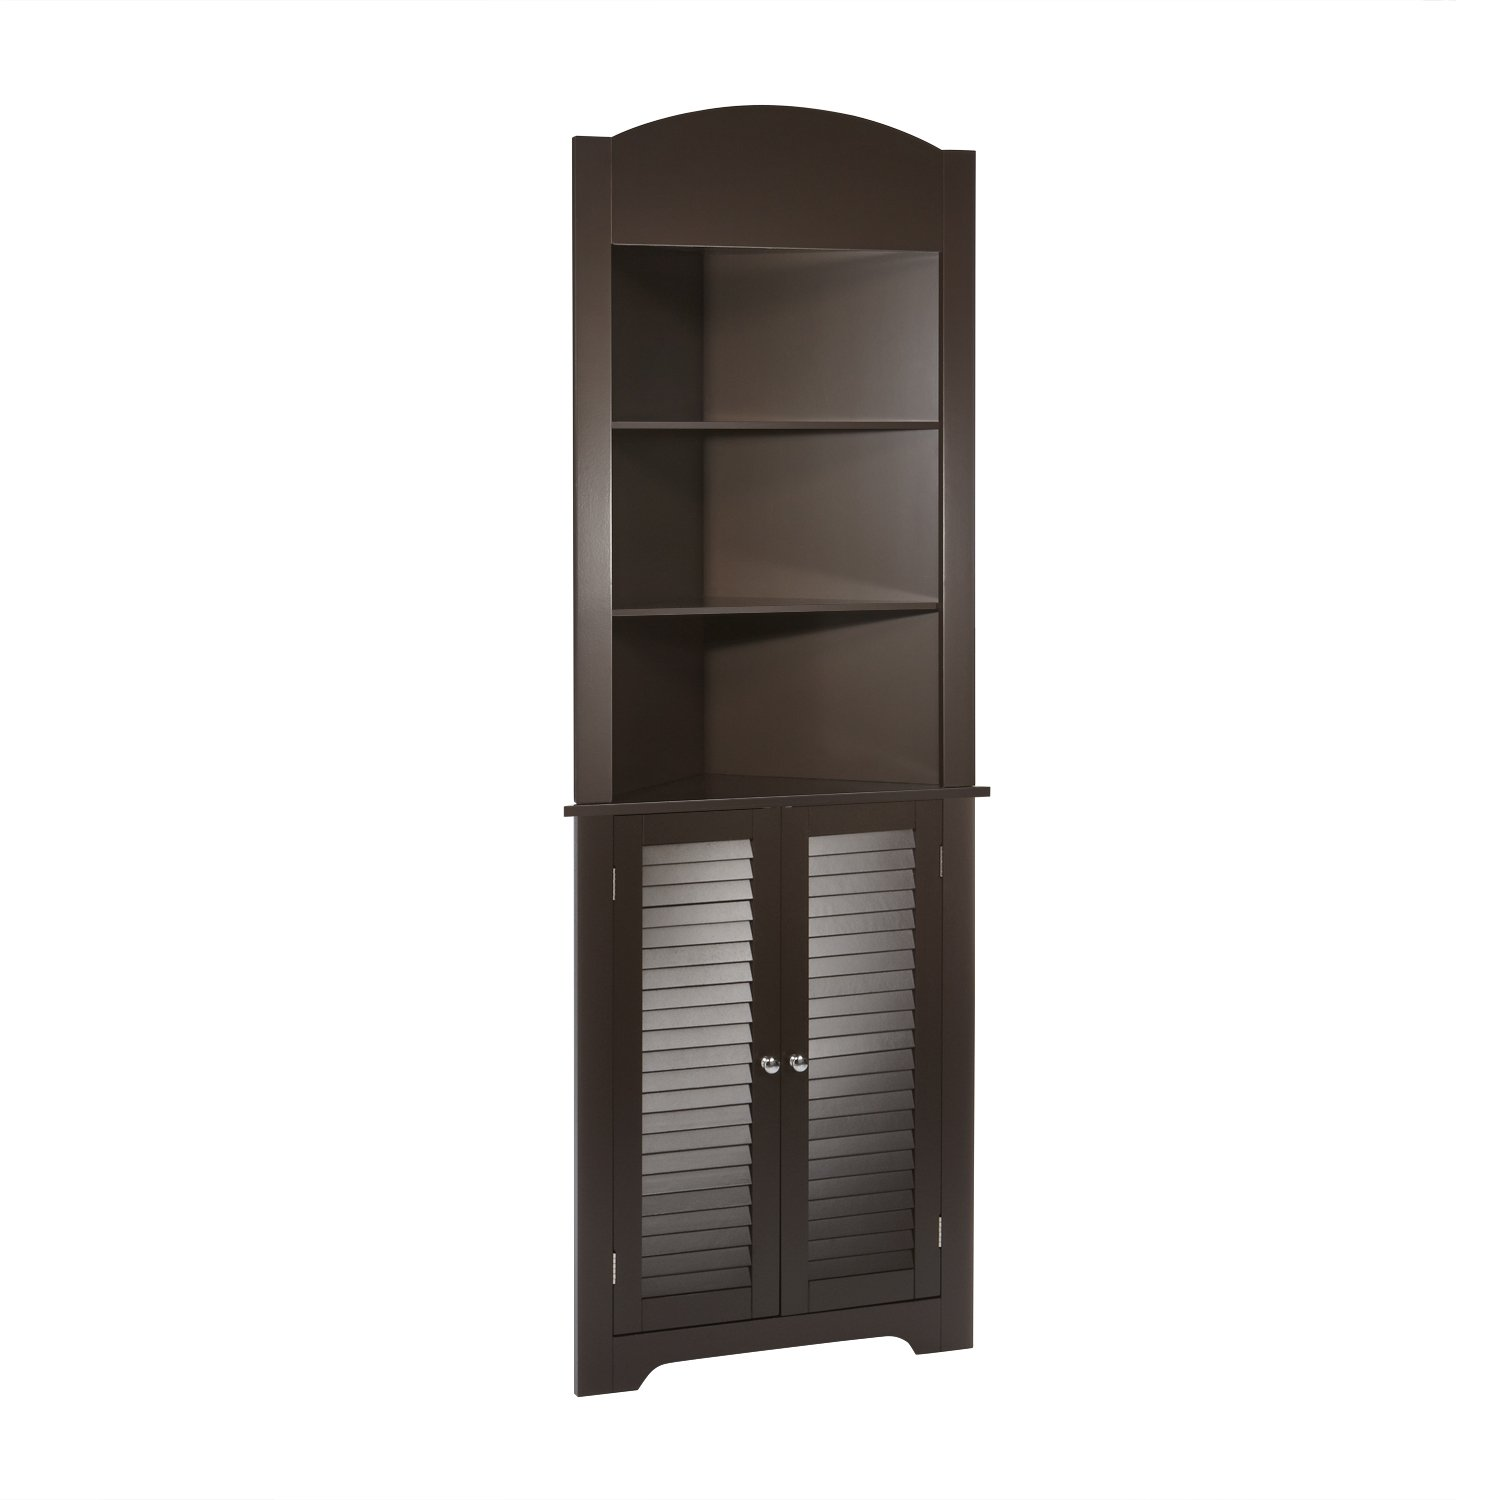 Amazon Ellsworth Tall Corner Etagere Espresso Home & Kitchen